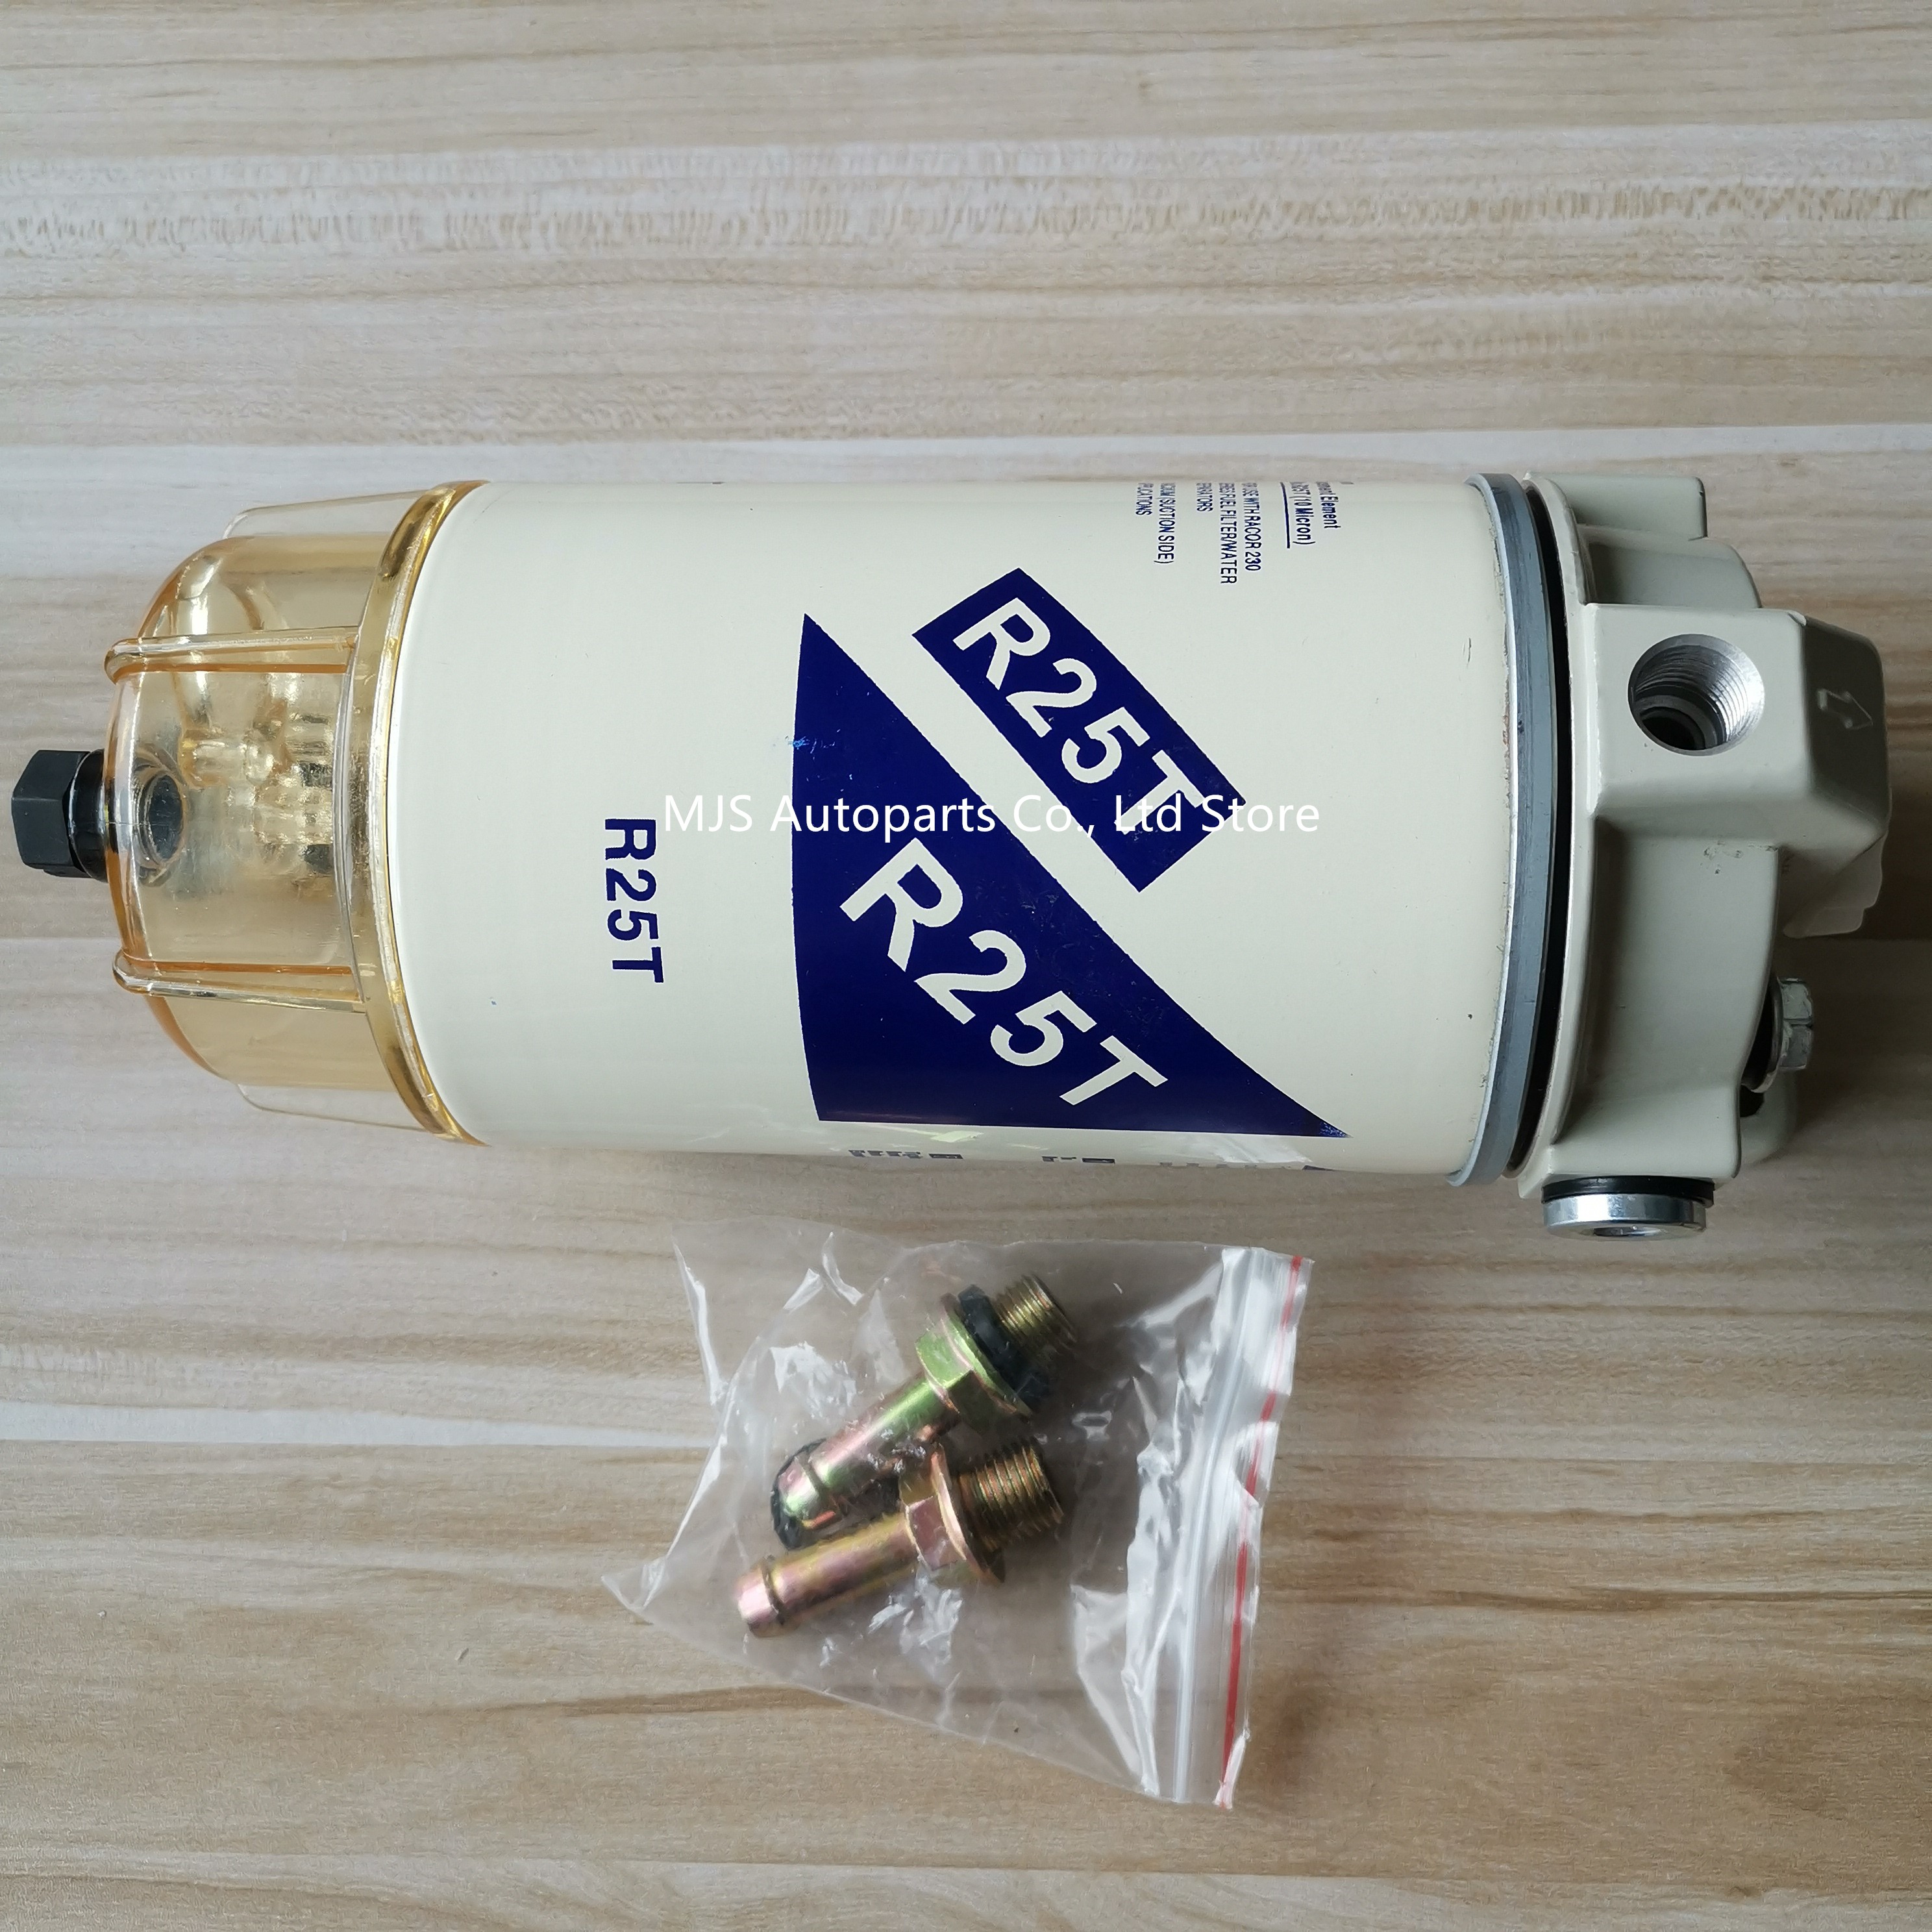 R25T 20998367 Fuel Filter Water Separator Assembly for Turbine Engine Marine Heavy duty truck trailer Mixer truck crane 20478263